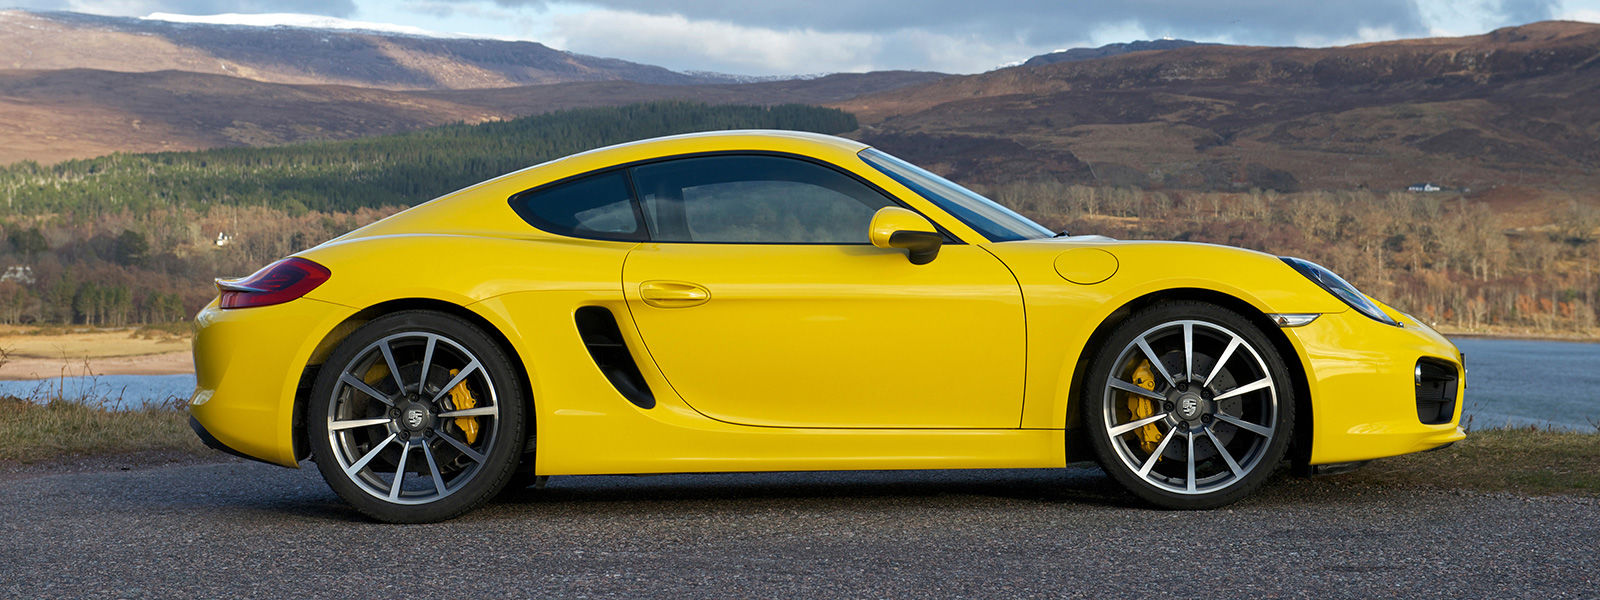 Porsche Cayman U2013 Racing Yellow